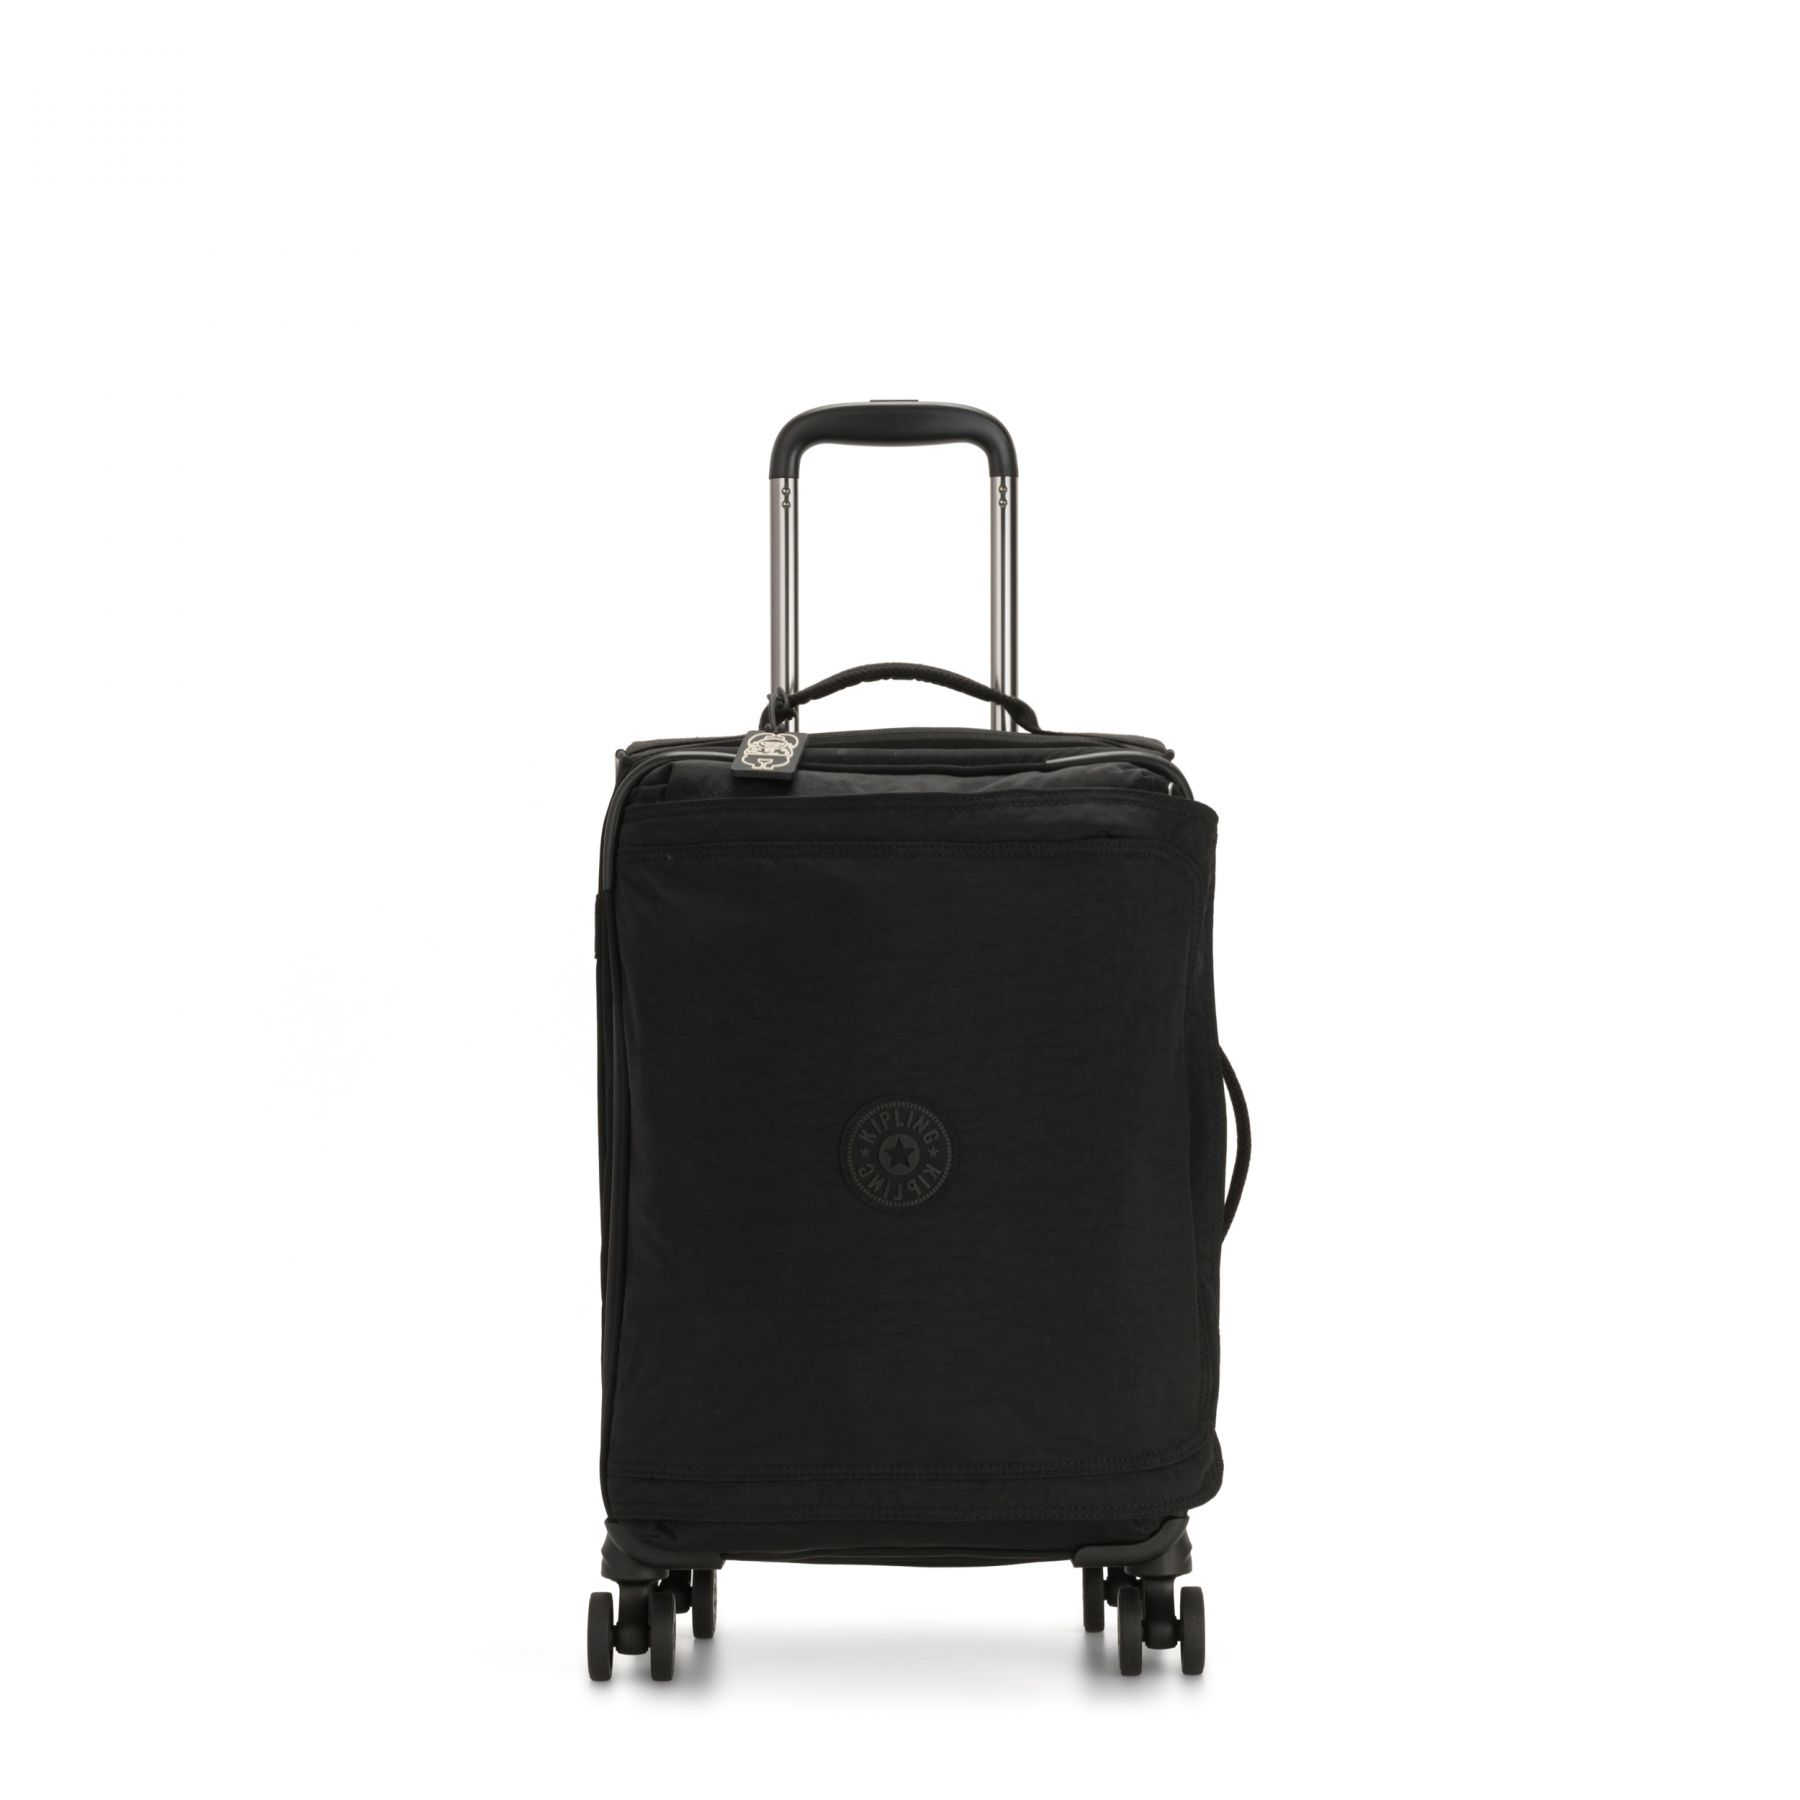 SPONTANEOUS S Latest Luggage by Kipling - Front view